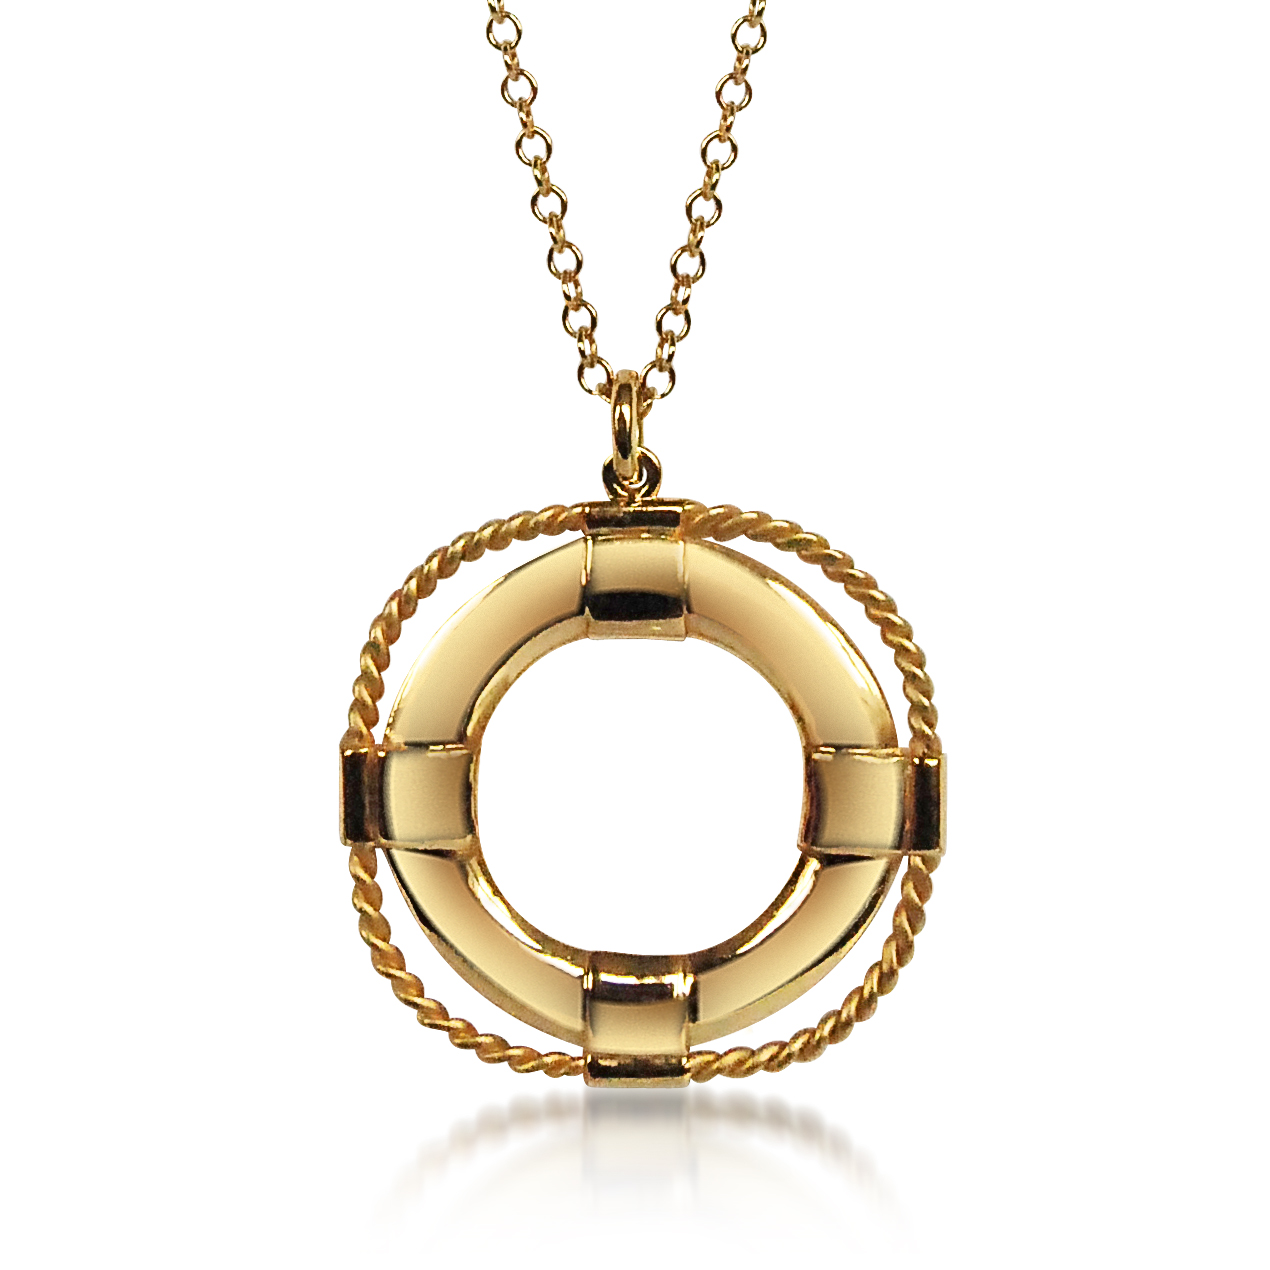 Gold-plated-silver-life-belt-pendant-necklace-SN83.jpg